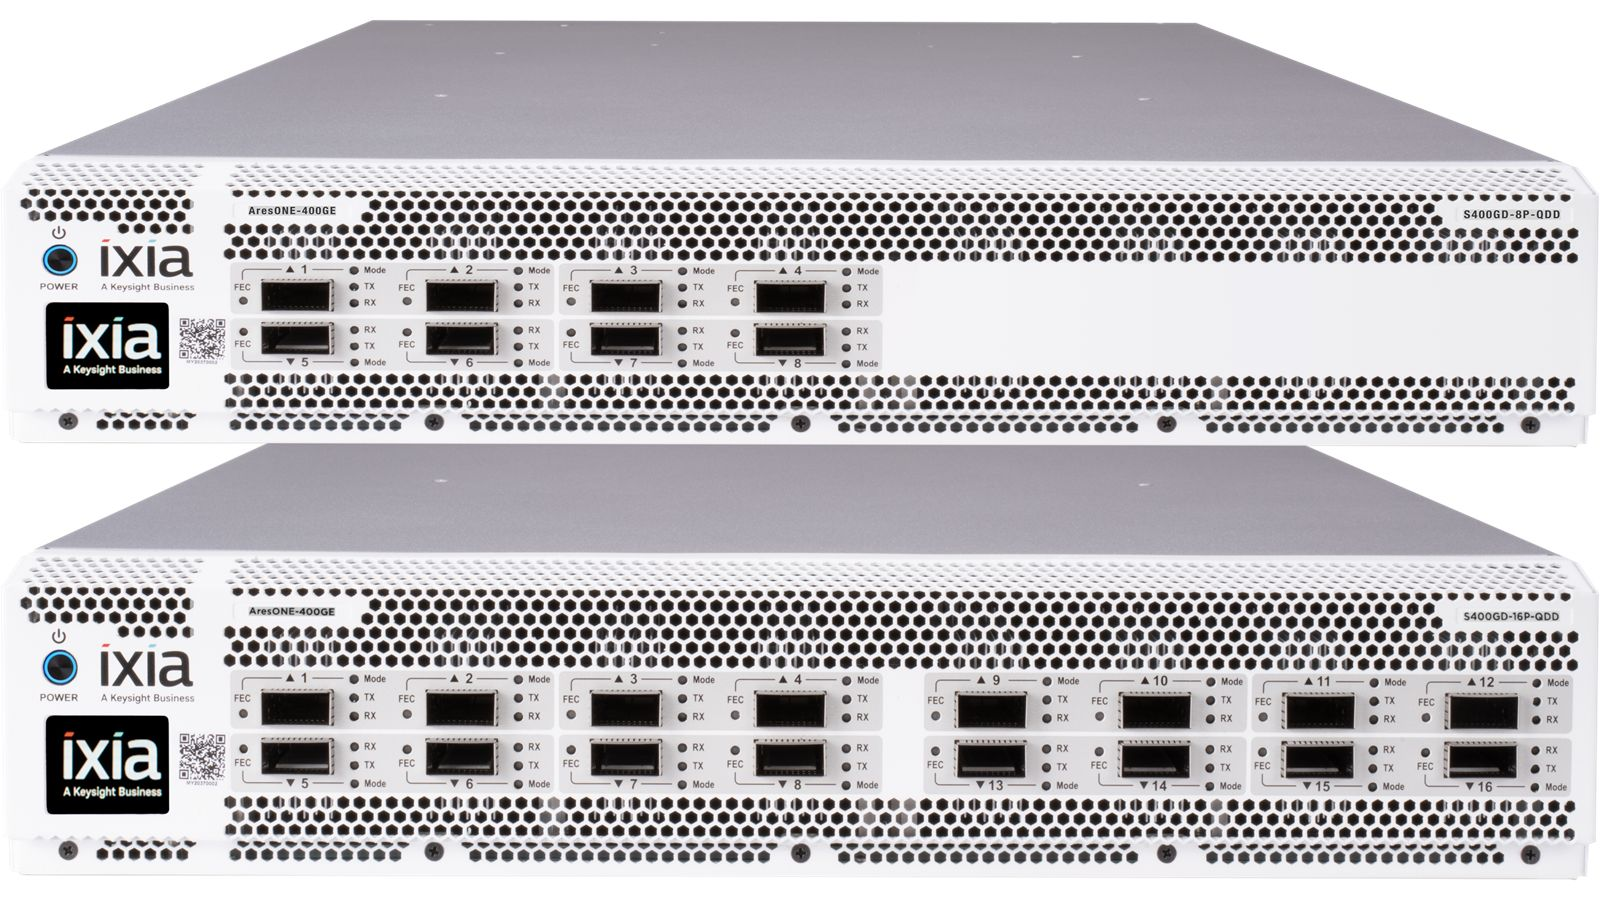 AresONE-S-400GE 16-Port PAM4 and NRZ Test